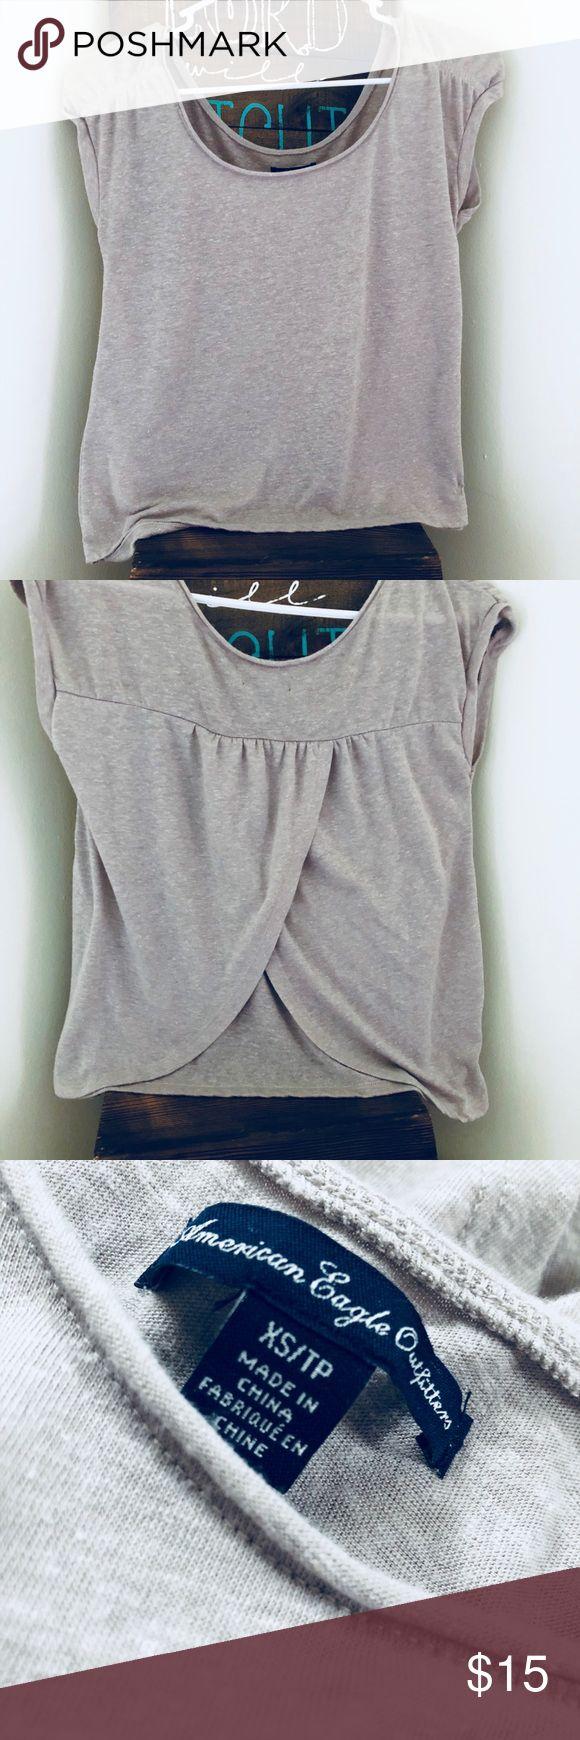 American Eagle Open Back Tee NWOT - never worn, brownish/gray, crop top w/ open back shirt! American Eagle Outfitters Tops Crop Tops